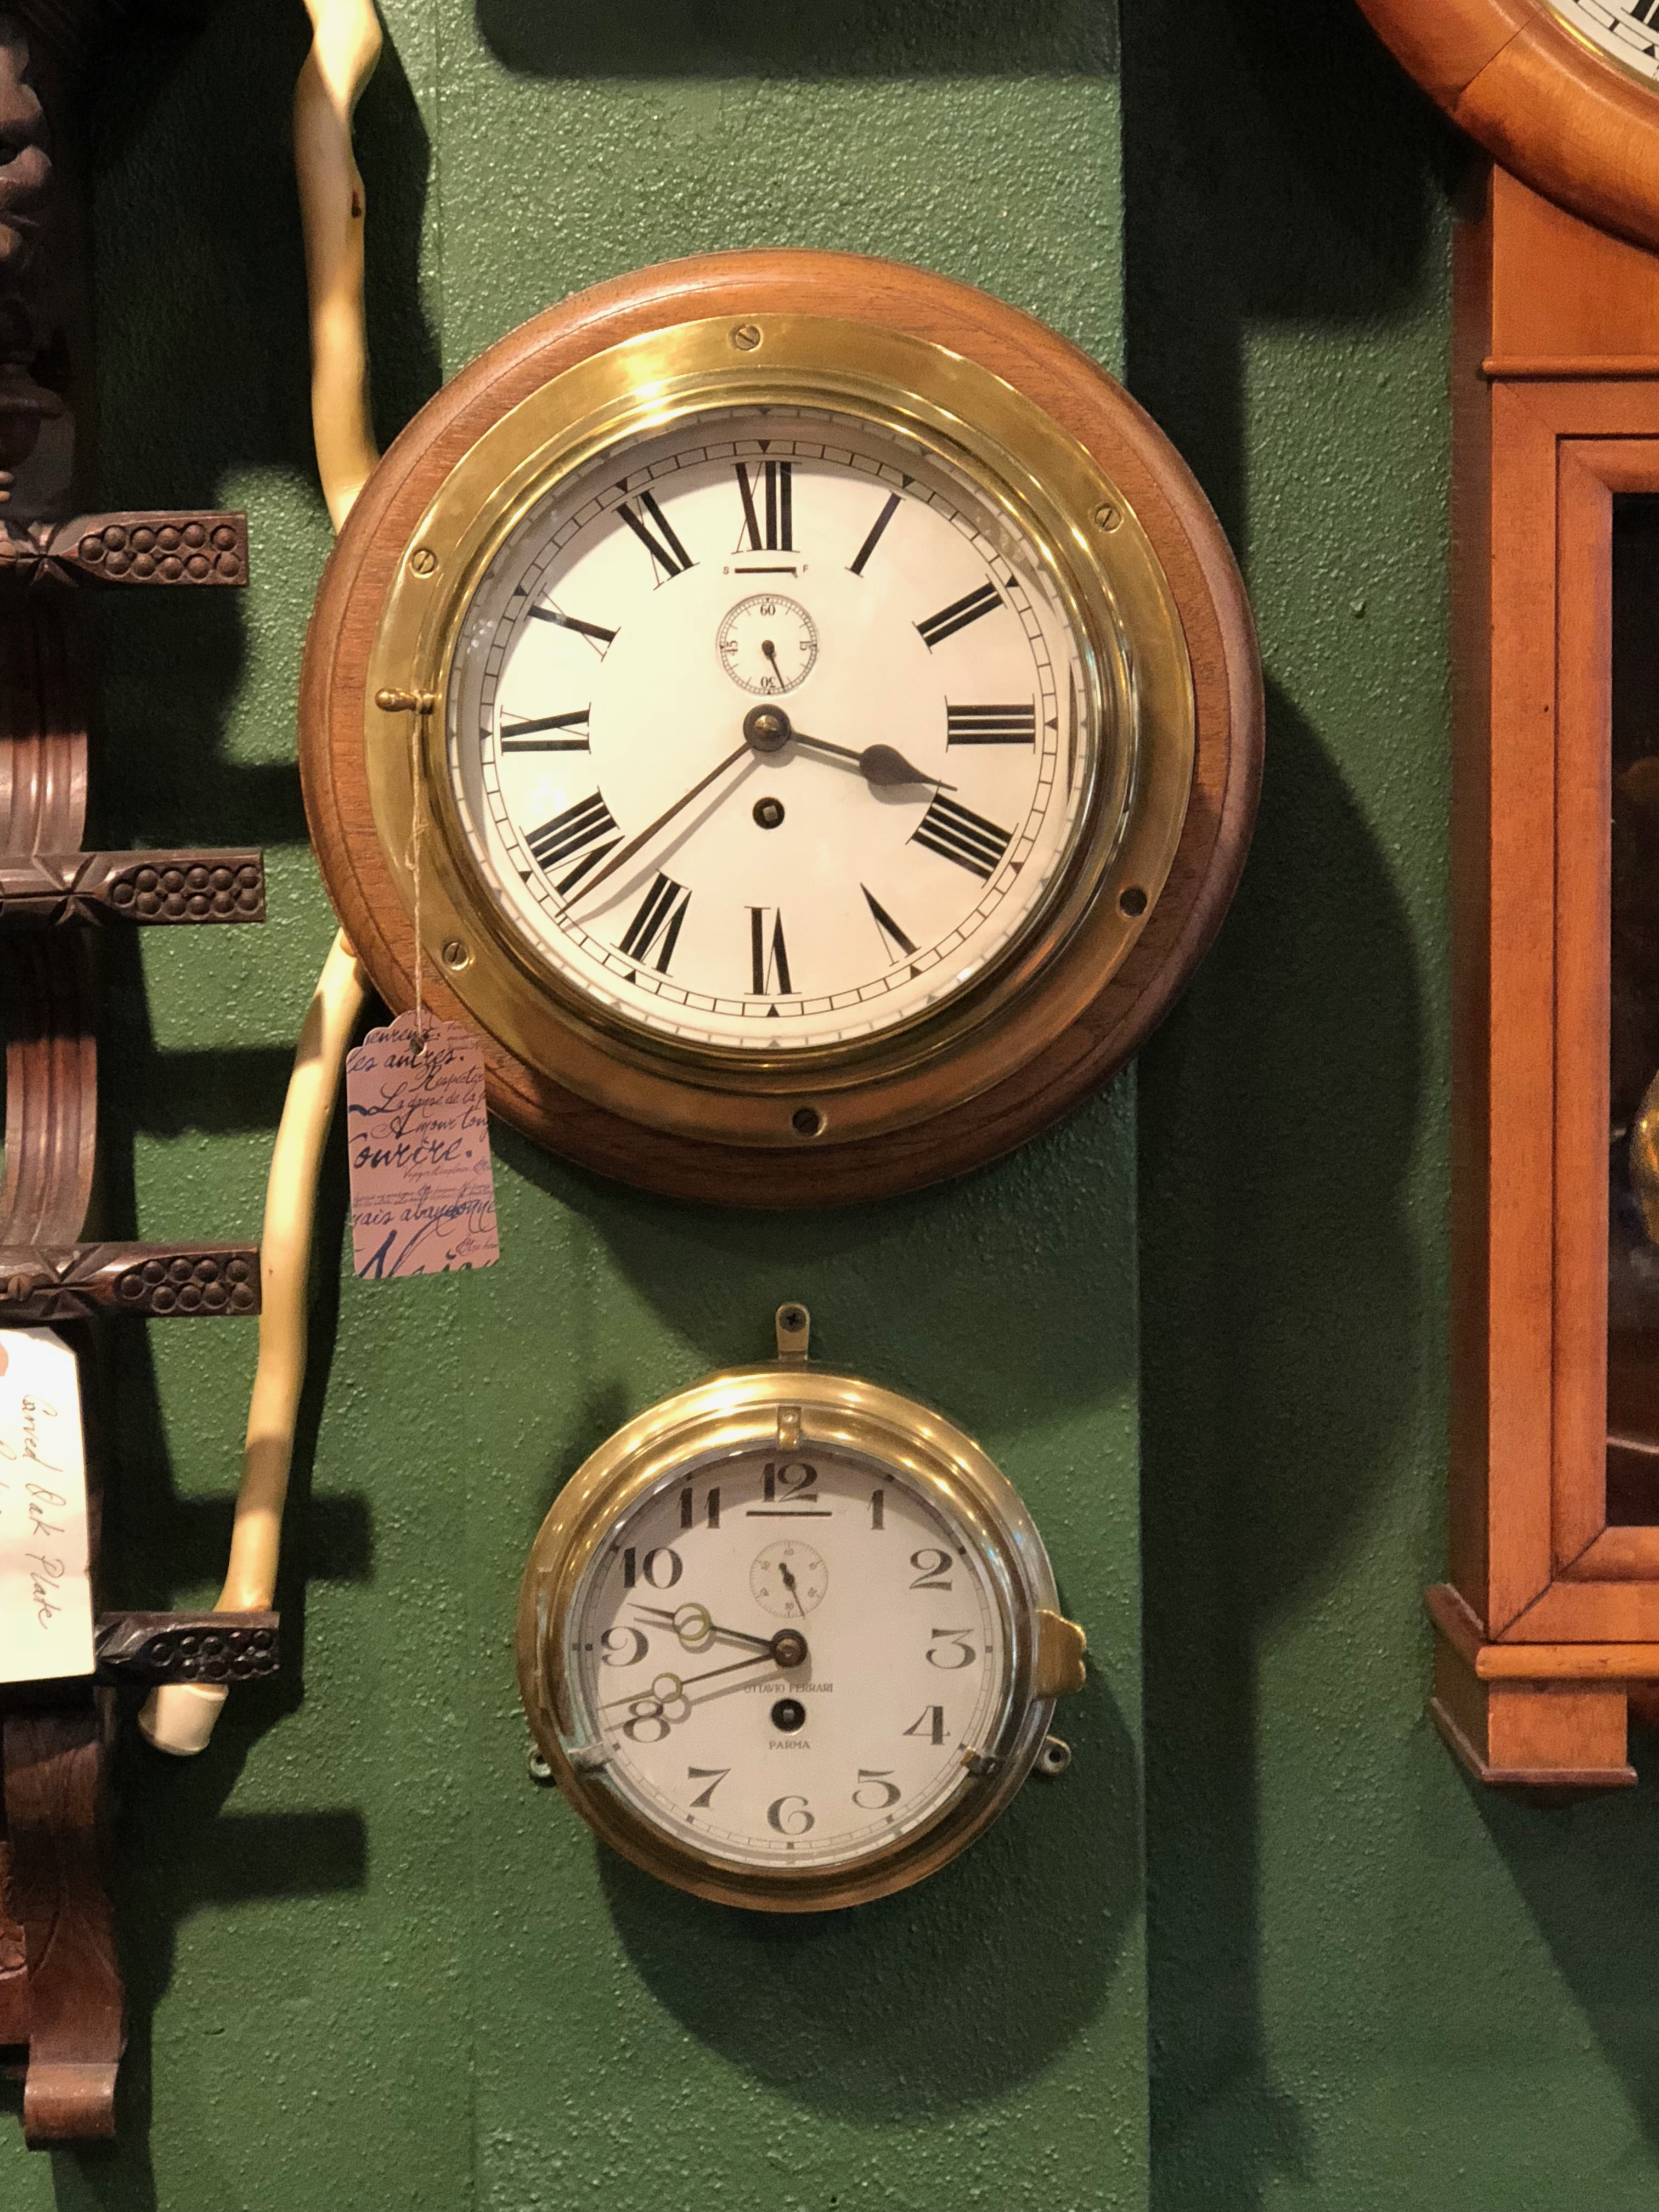 Bulkhead clocks, German & Italian